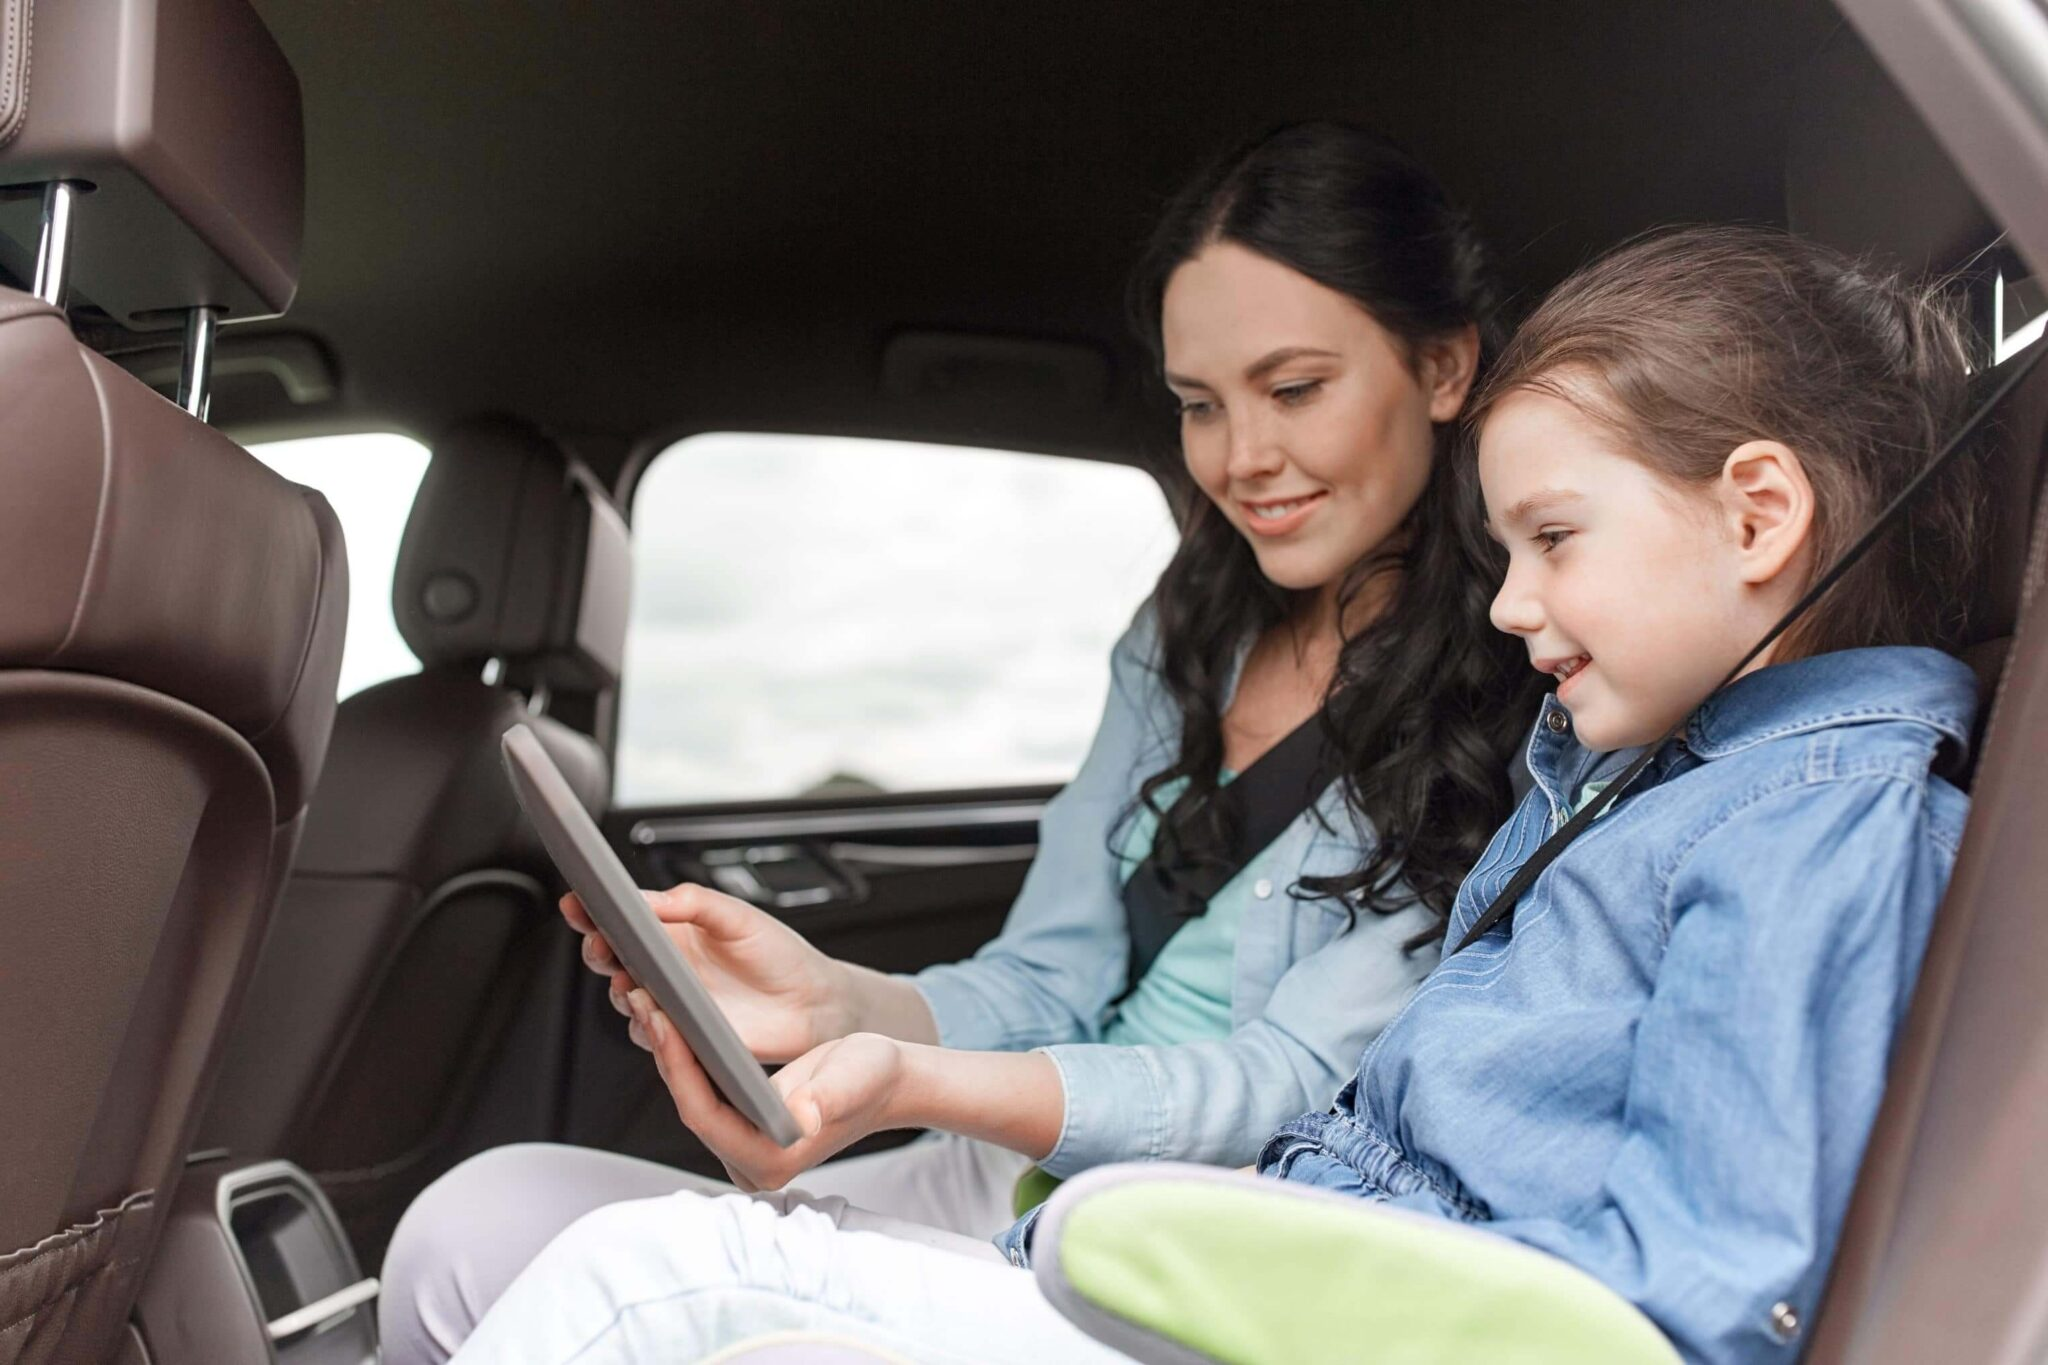 woman holding a table device and showing it to her child in the back seat of a car